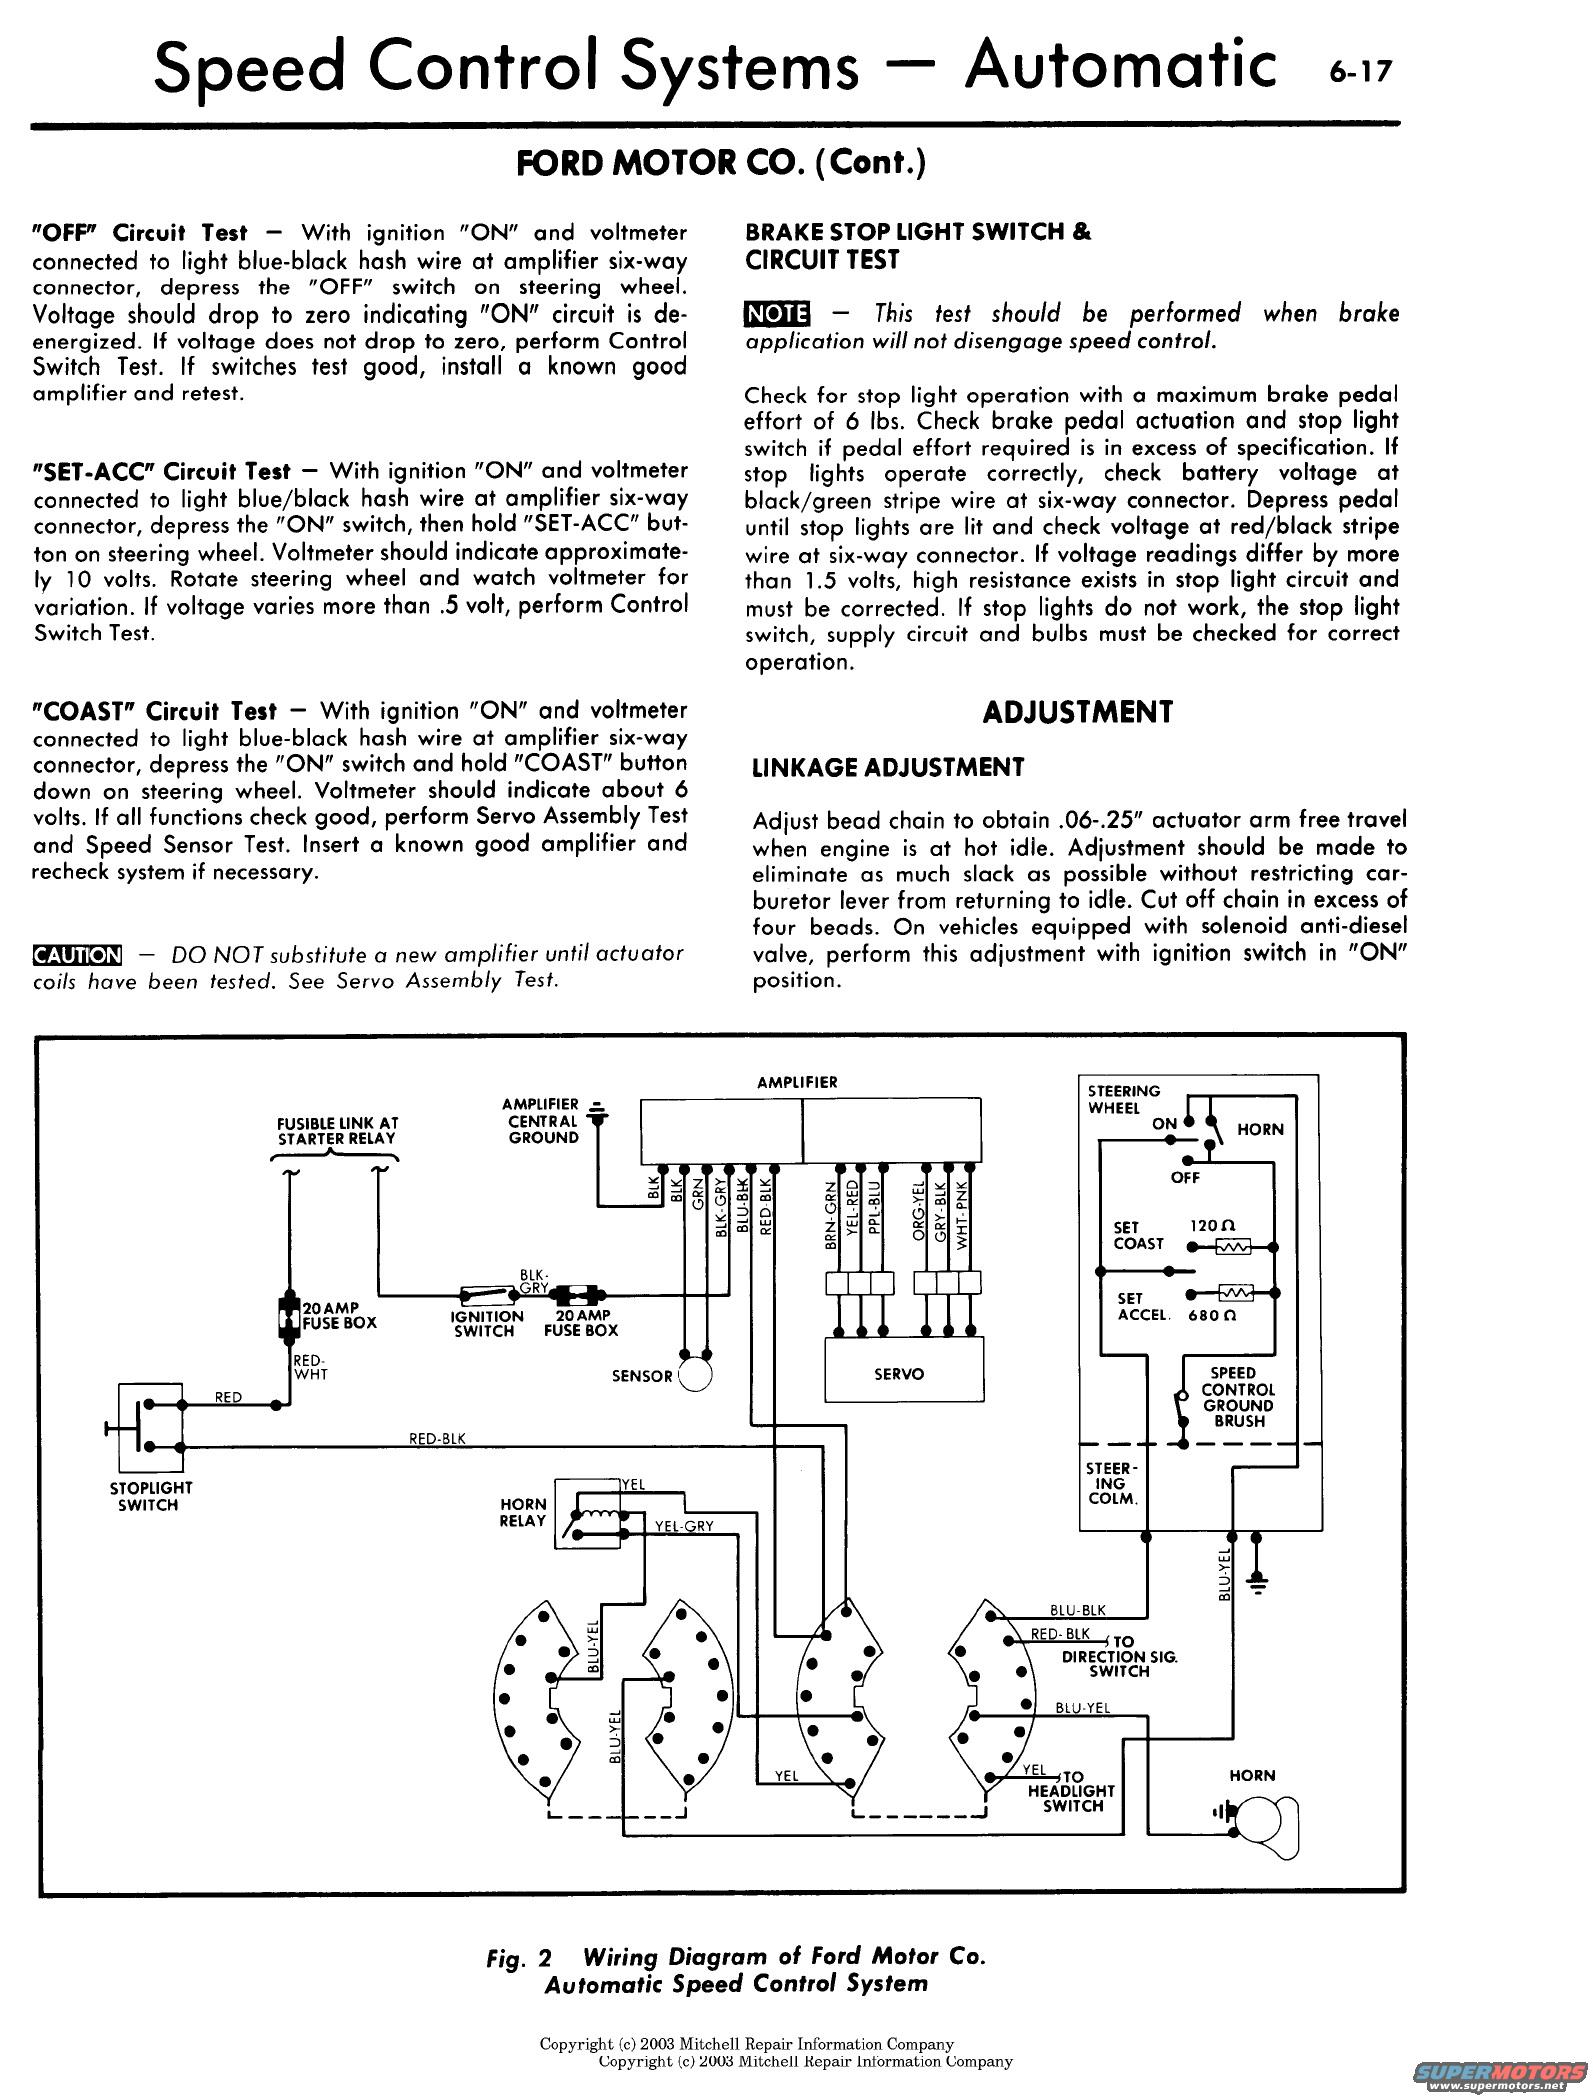 dana cruise control wiring diagram for a 1997 stratos b boat Cruise Control Fuse  1954 Ford Overdrive Kickdown Switch Wiring Diagram 1991 Dodge Truck Wiring Diagram Ford Cruise Control Wiring Diagram